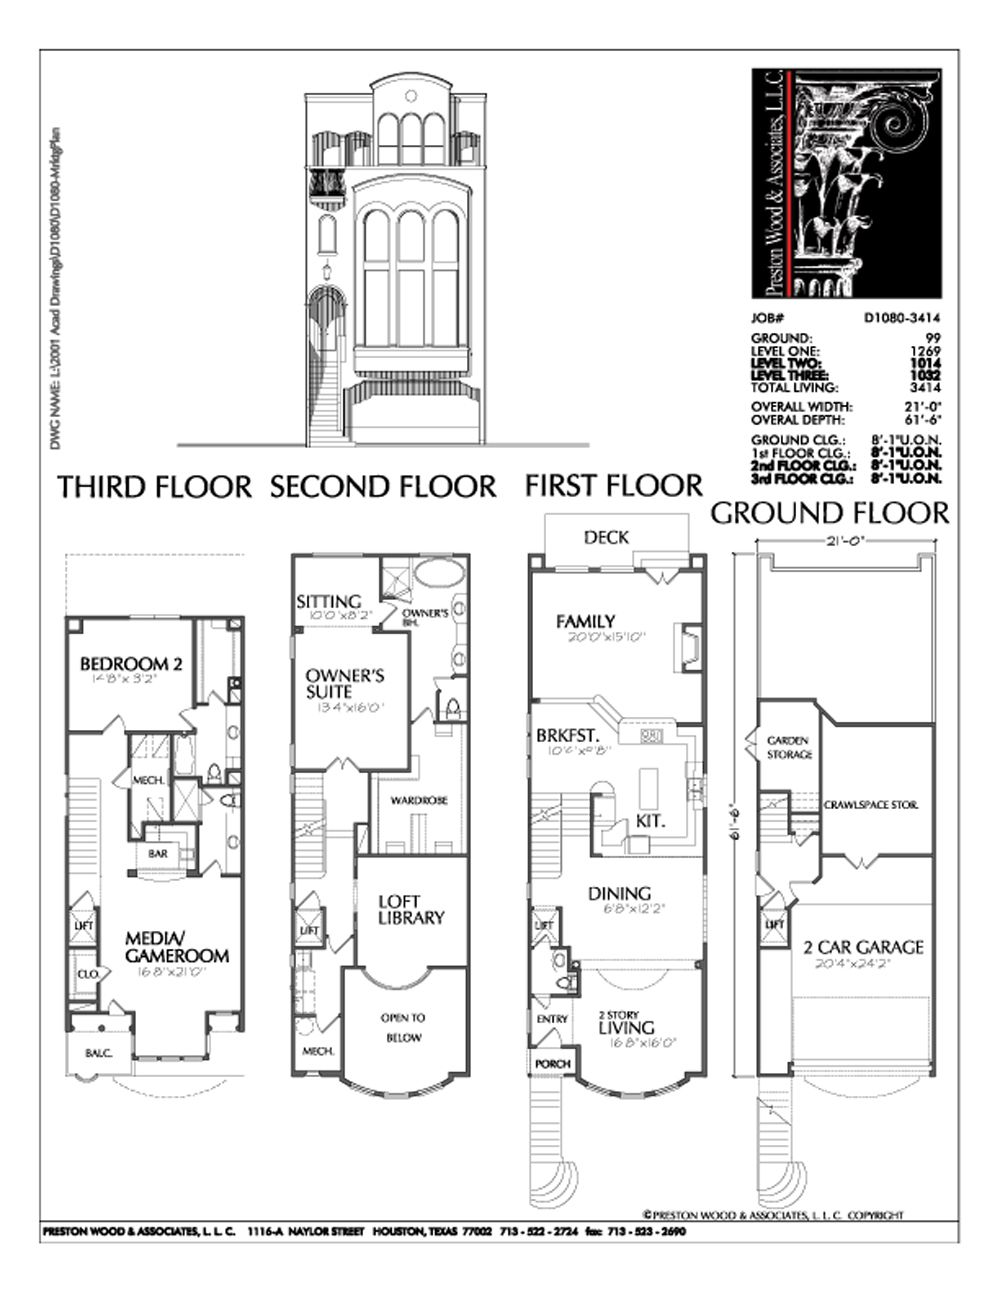 Duplex townhome plan d1080